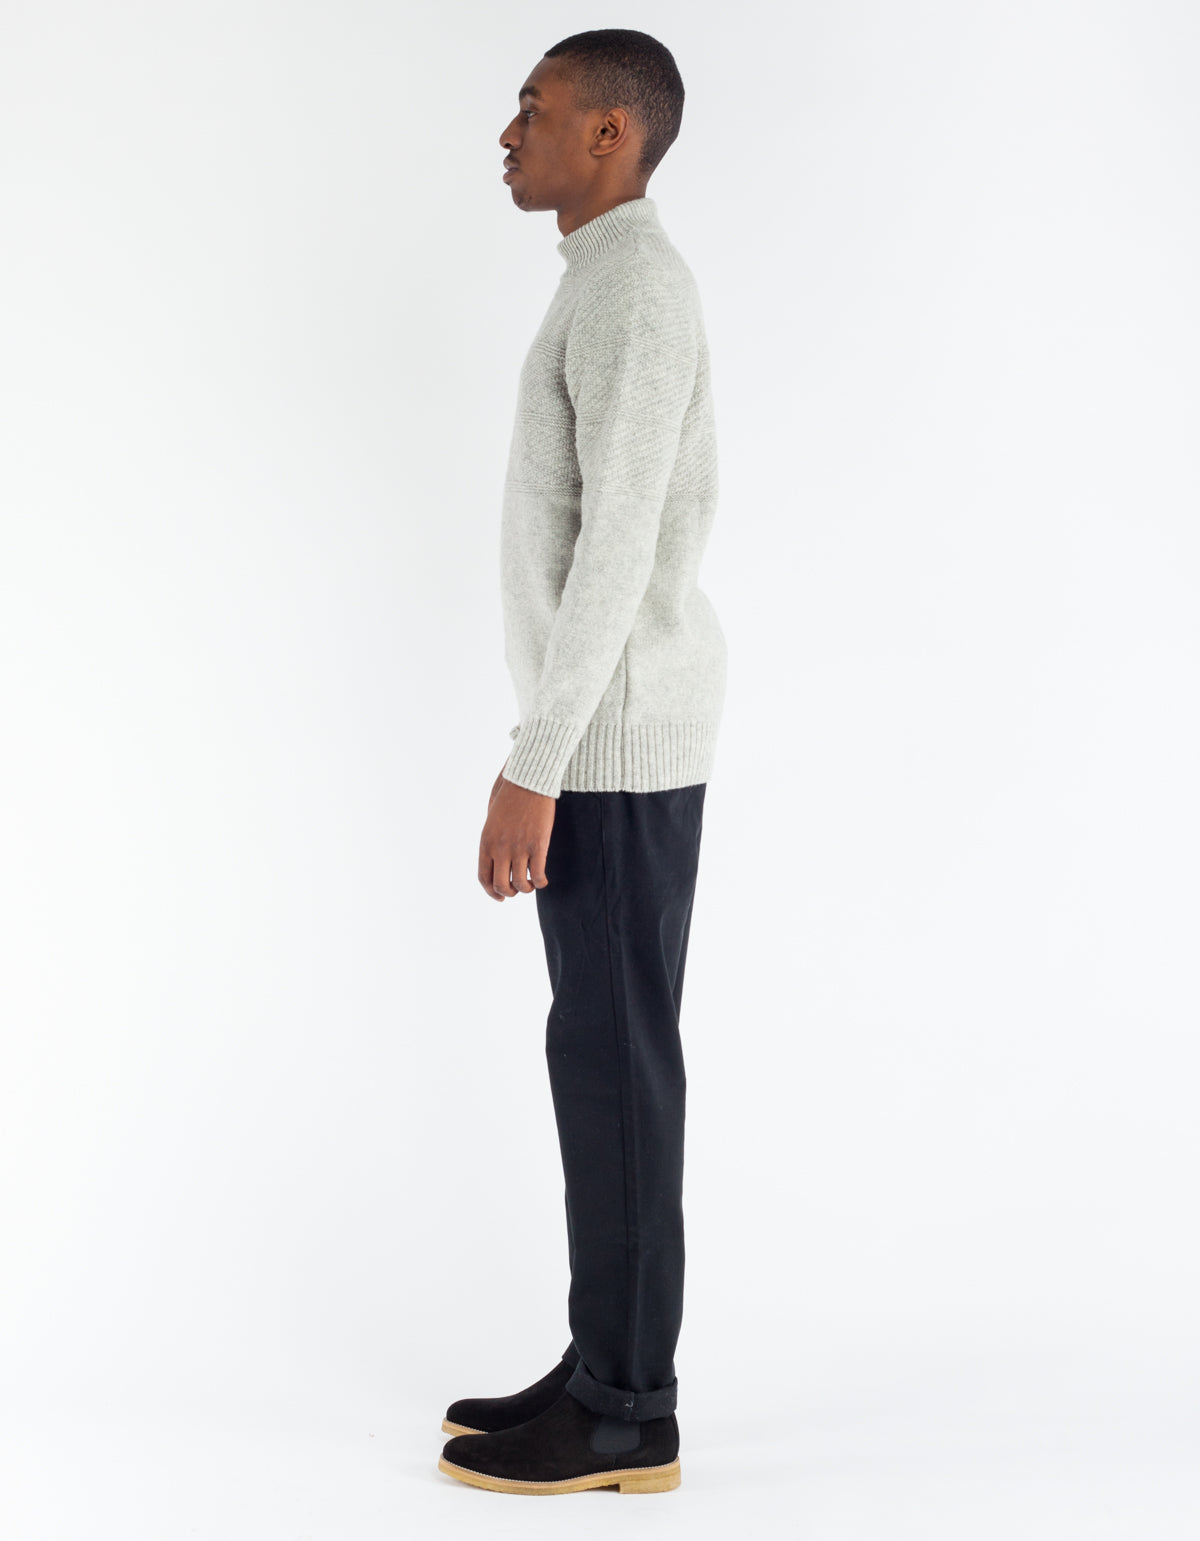 La Paz Joost Sailor Sweater Grey Mesc